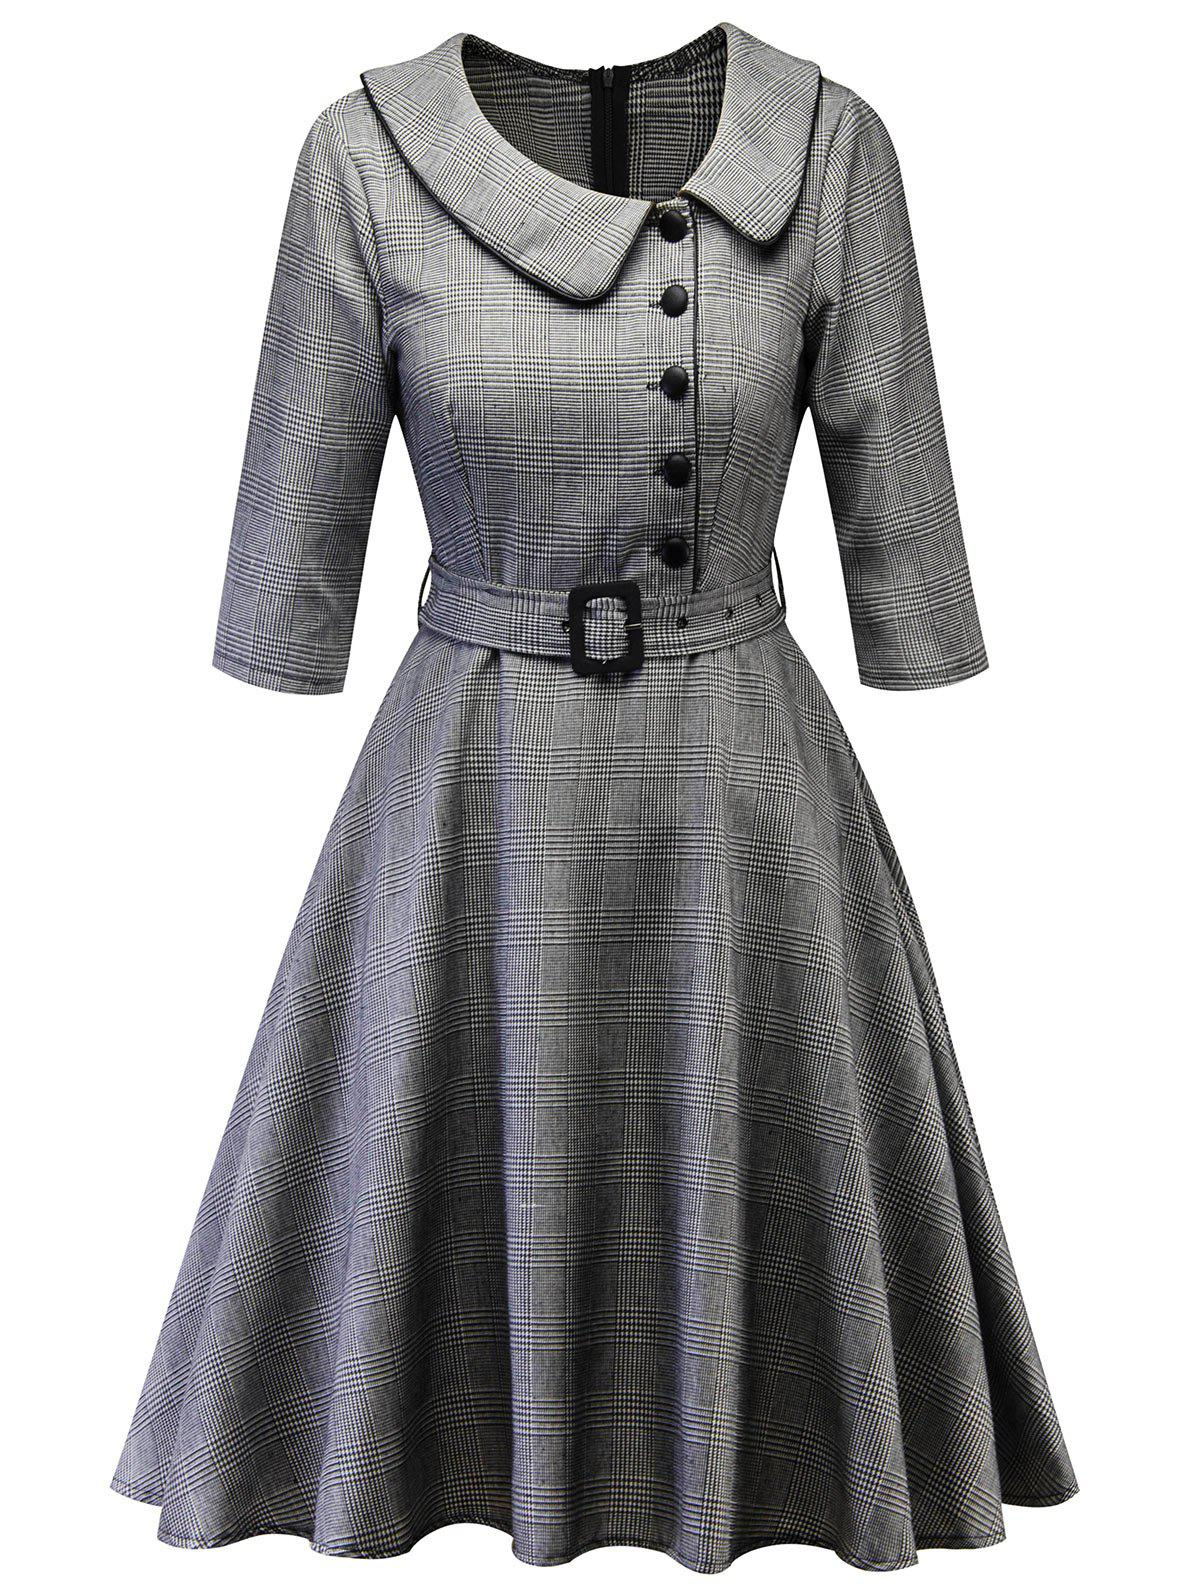 Trendy Plaid Peter Pan Collar Vintage Dress